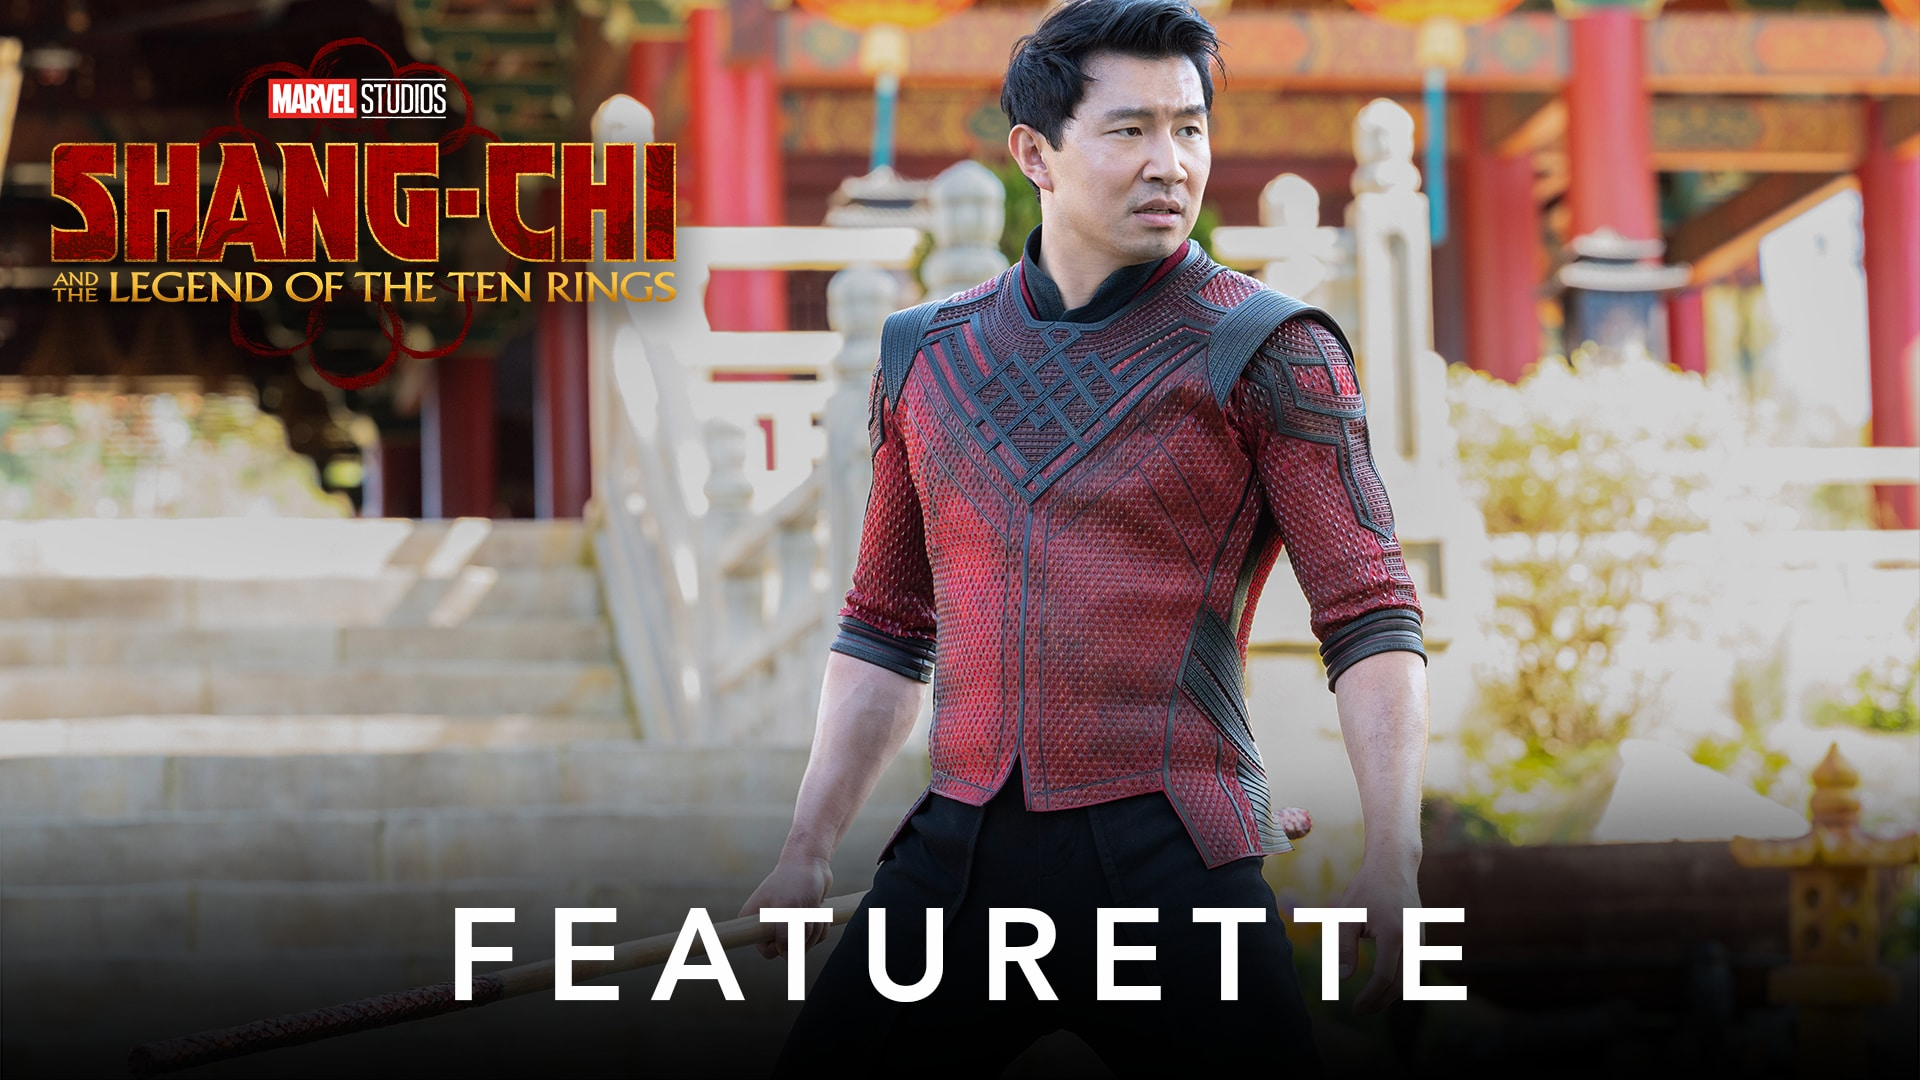 Destiny Featurette | Marvel Studios' Shang-Chi and the Legend of the Ten Rings